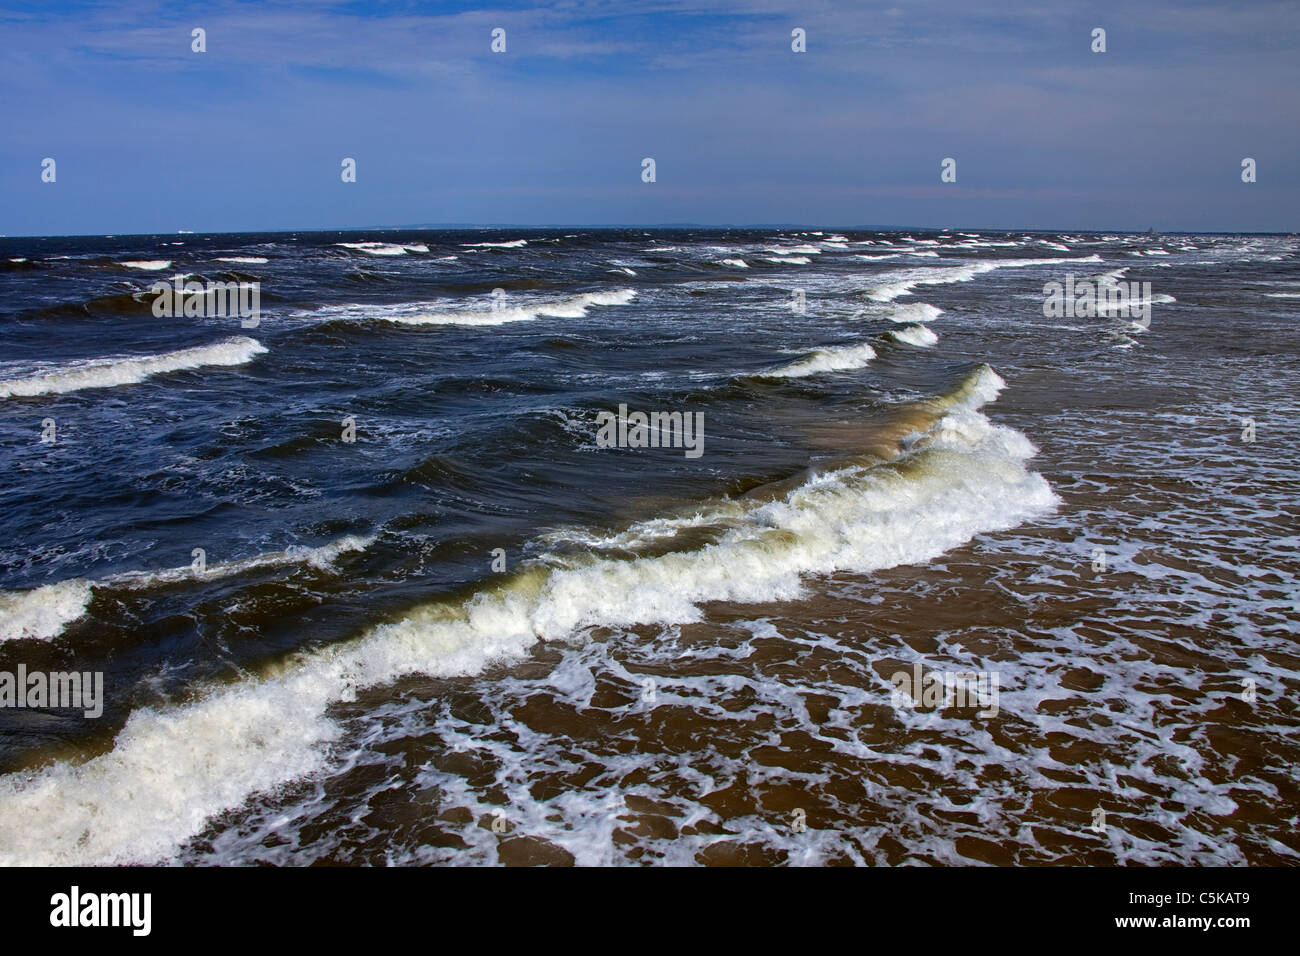 Waves at sea during storm, Germany - Stock Image